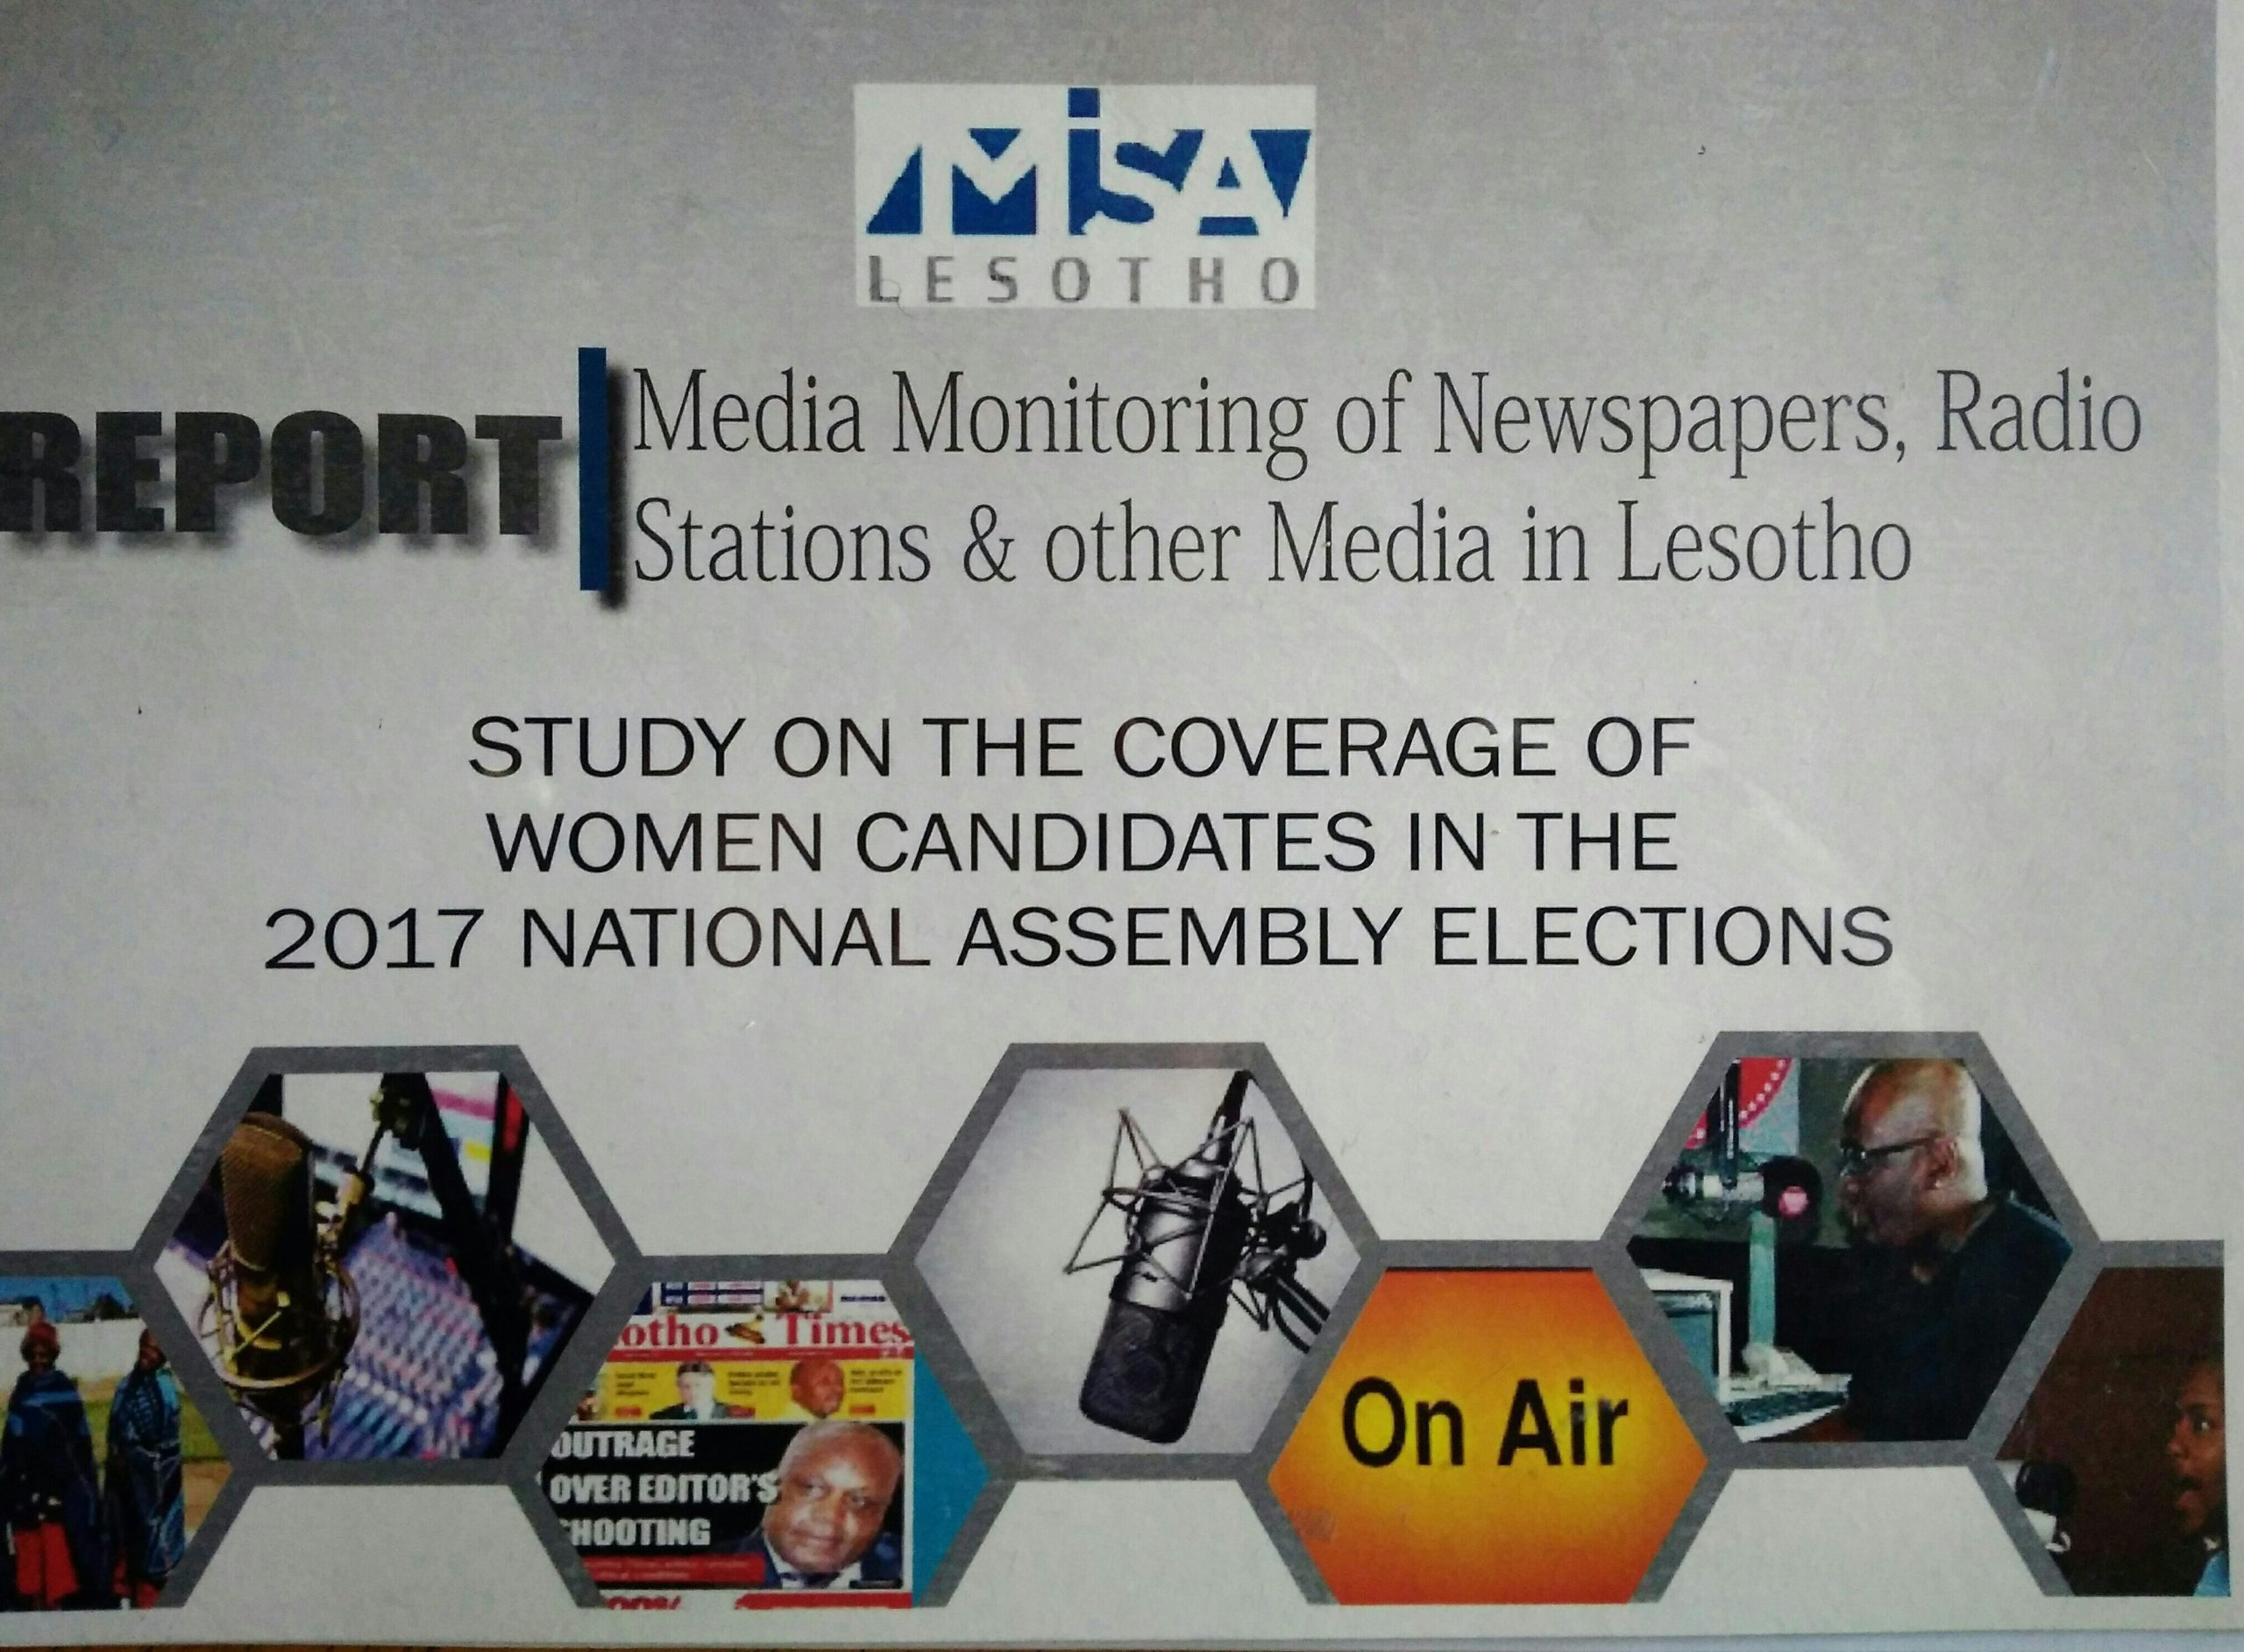 Report: Coverage of women candidates in the 2017 national assembly elections